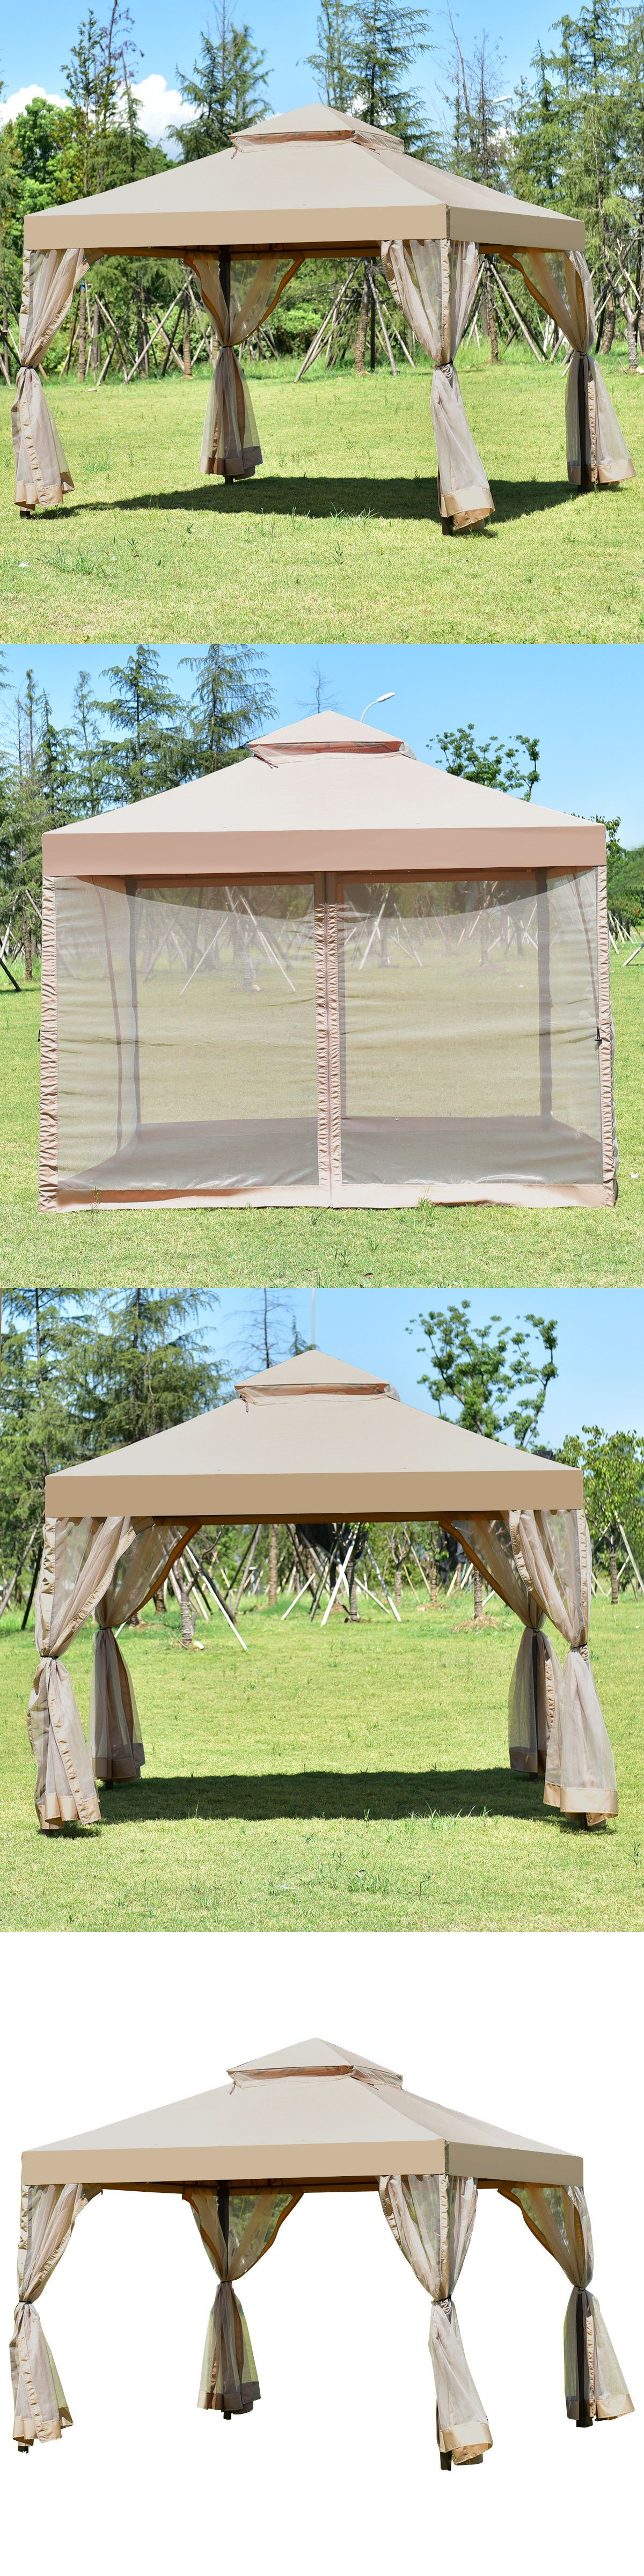 Awnings And Canopies 180992 Outdoor 2 Tier 10 X10 Gazebo Canopy Shelter Awning Tent Patio Garden Brown New Buy It Now O Gazebo Canopy Canopy Shelter Gazebo